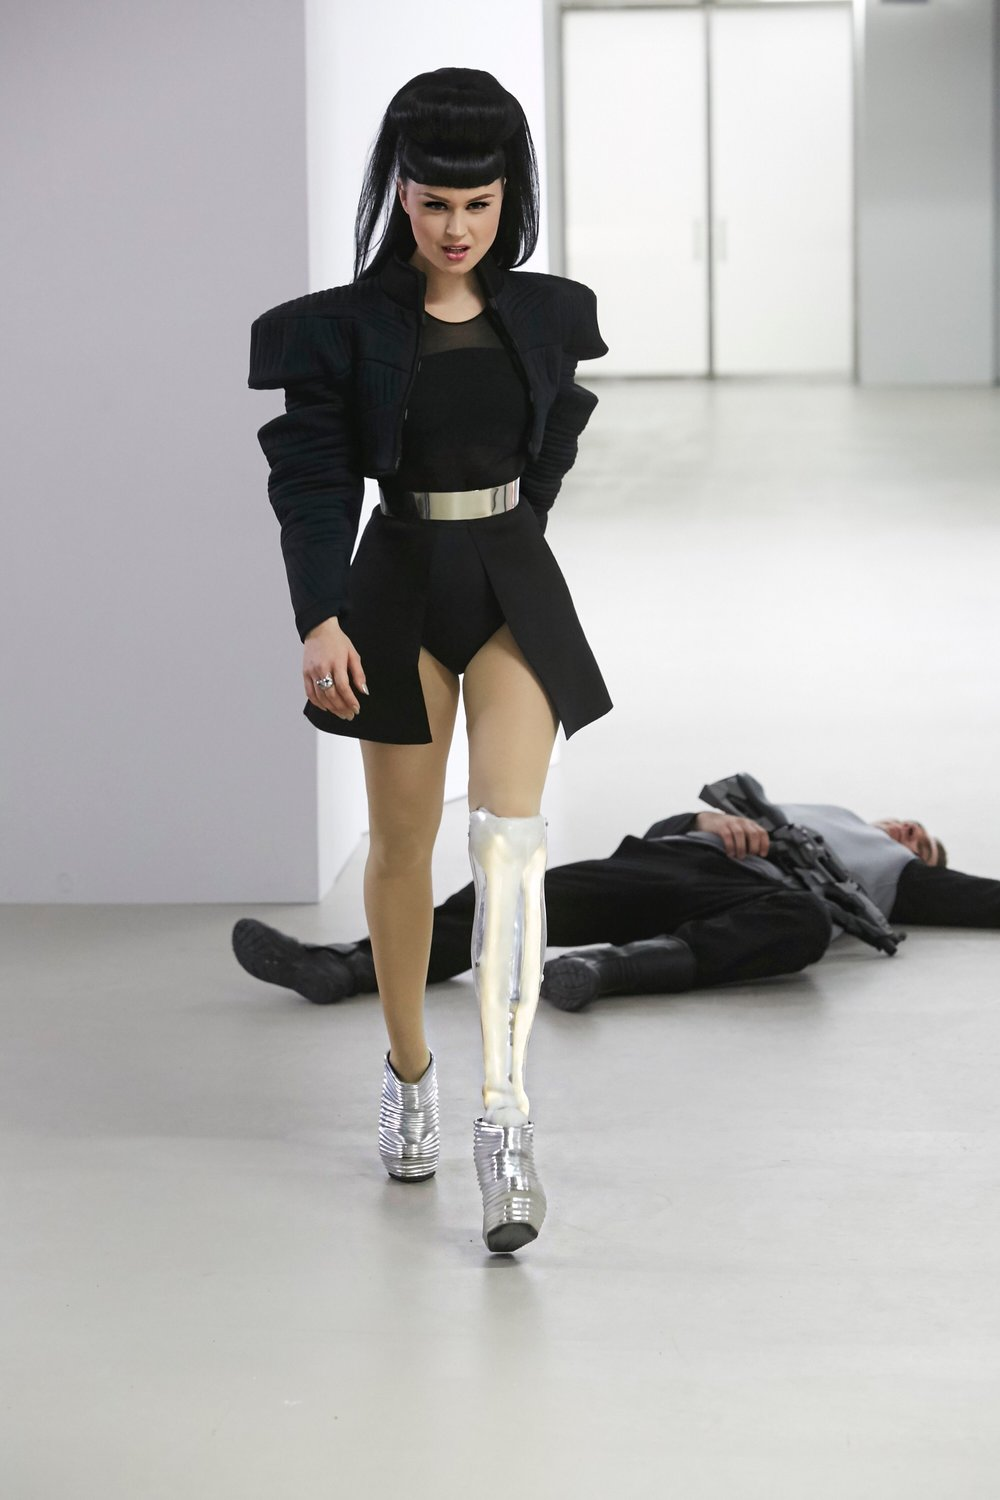 Viktoria modesta killjoys